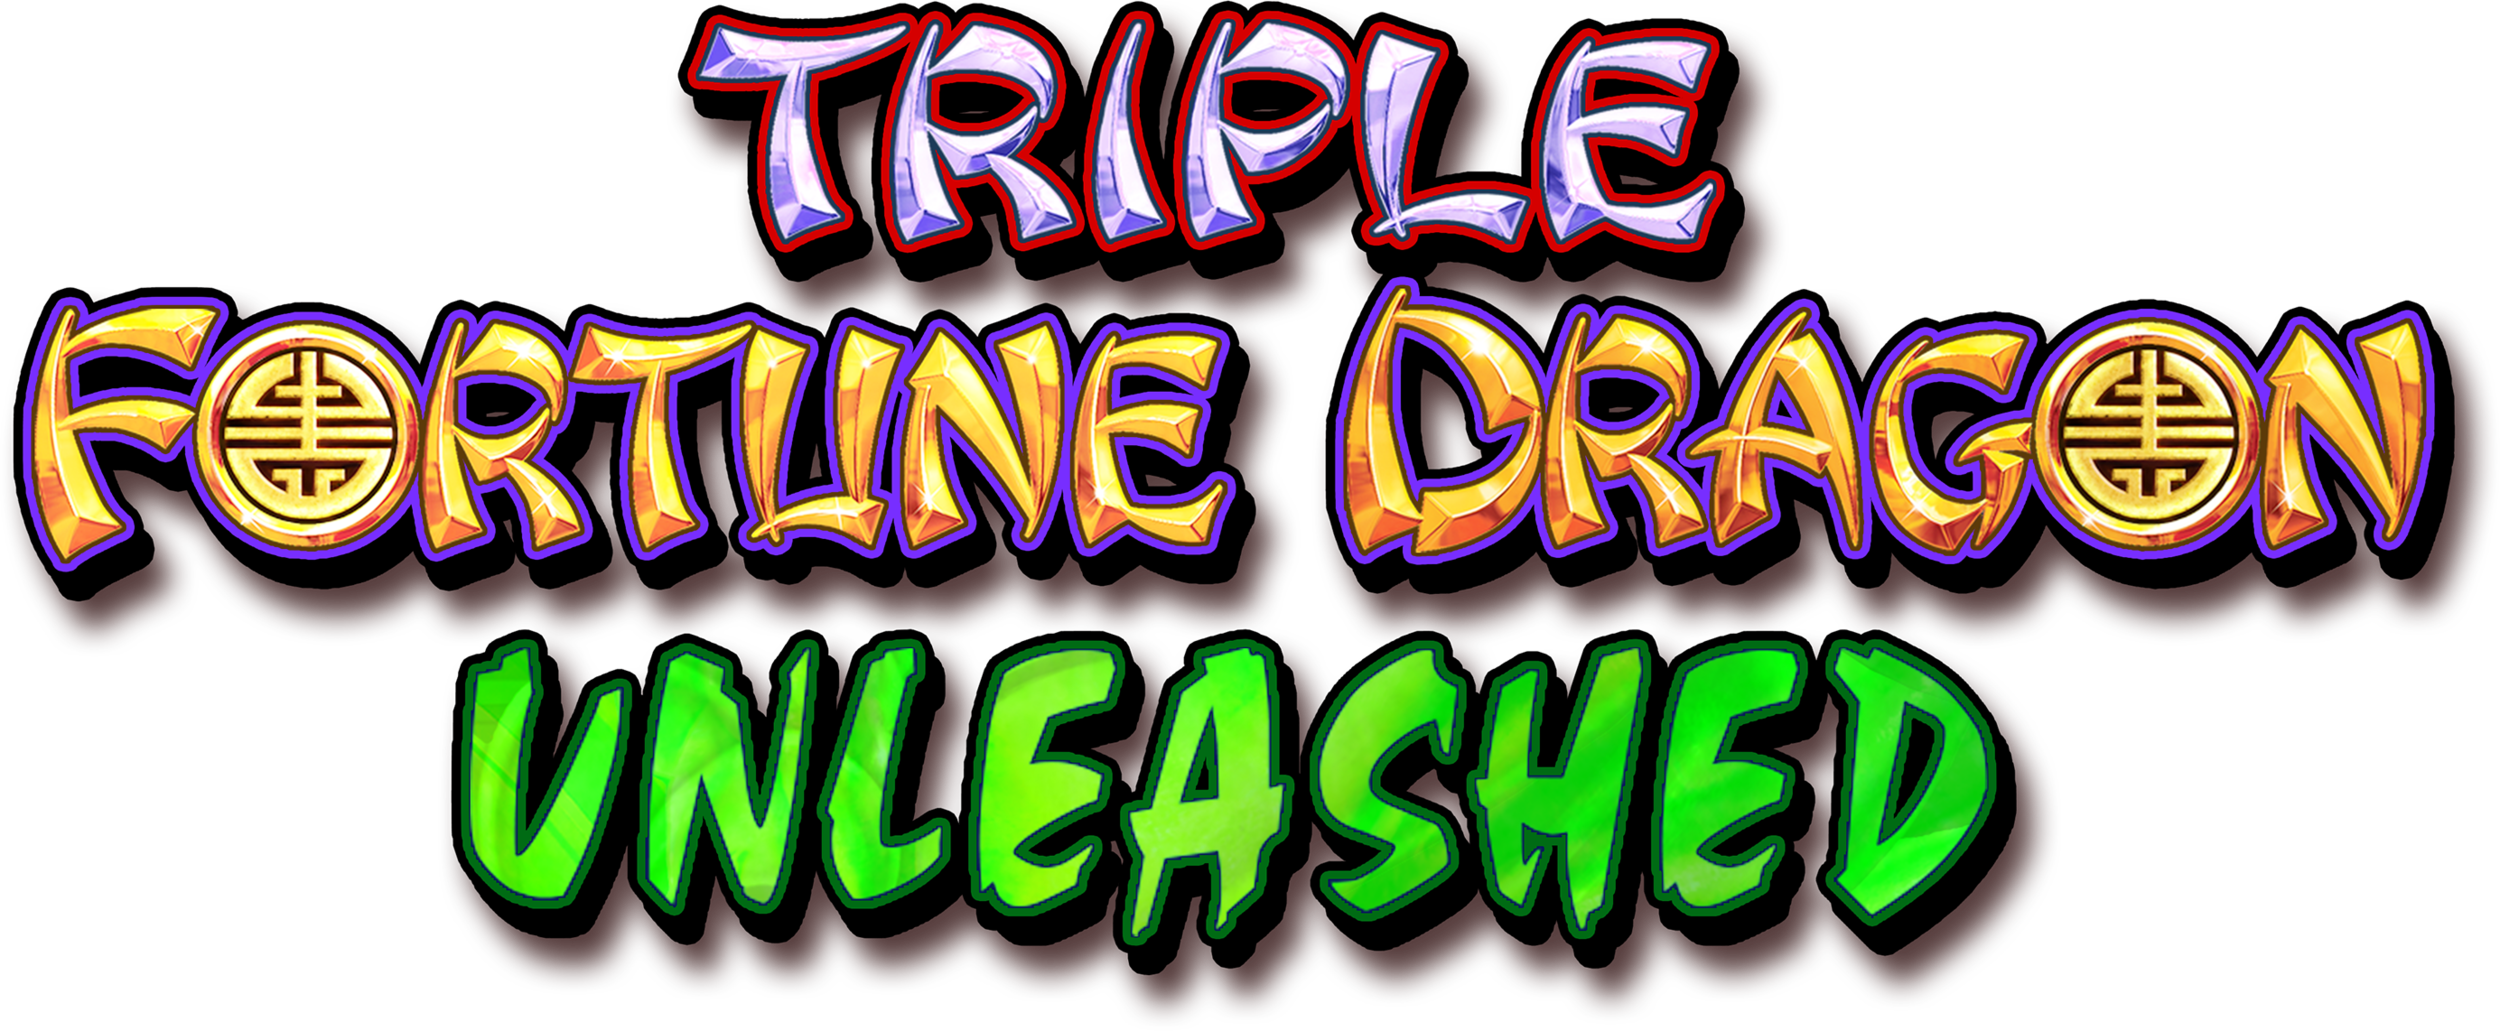 LOGO_TripleFortuneDragon_Unleashed_CDS.png